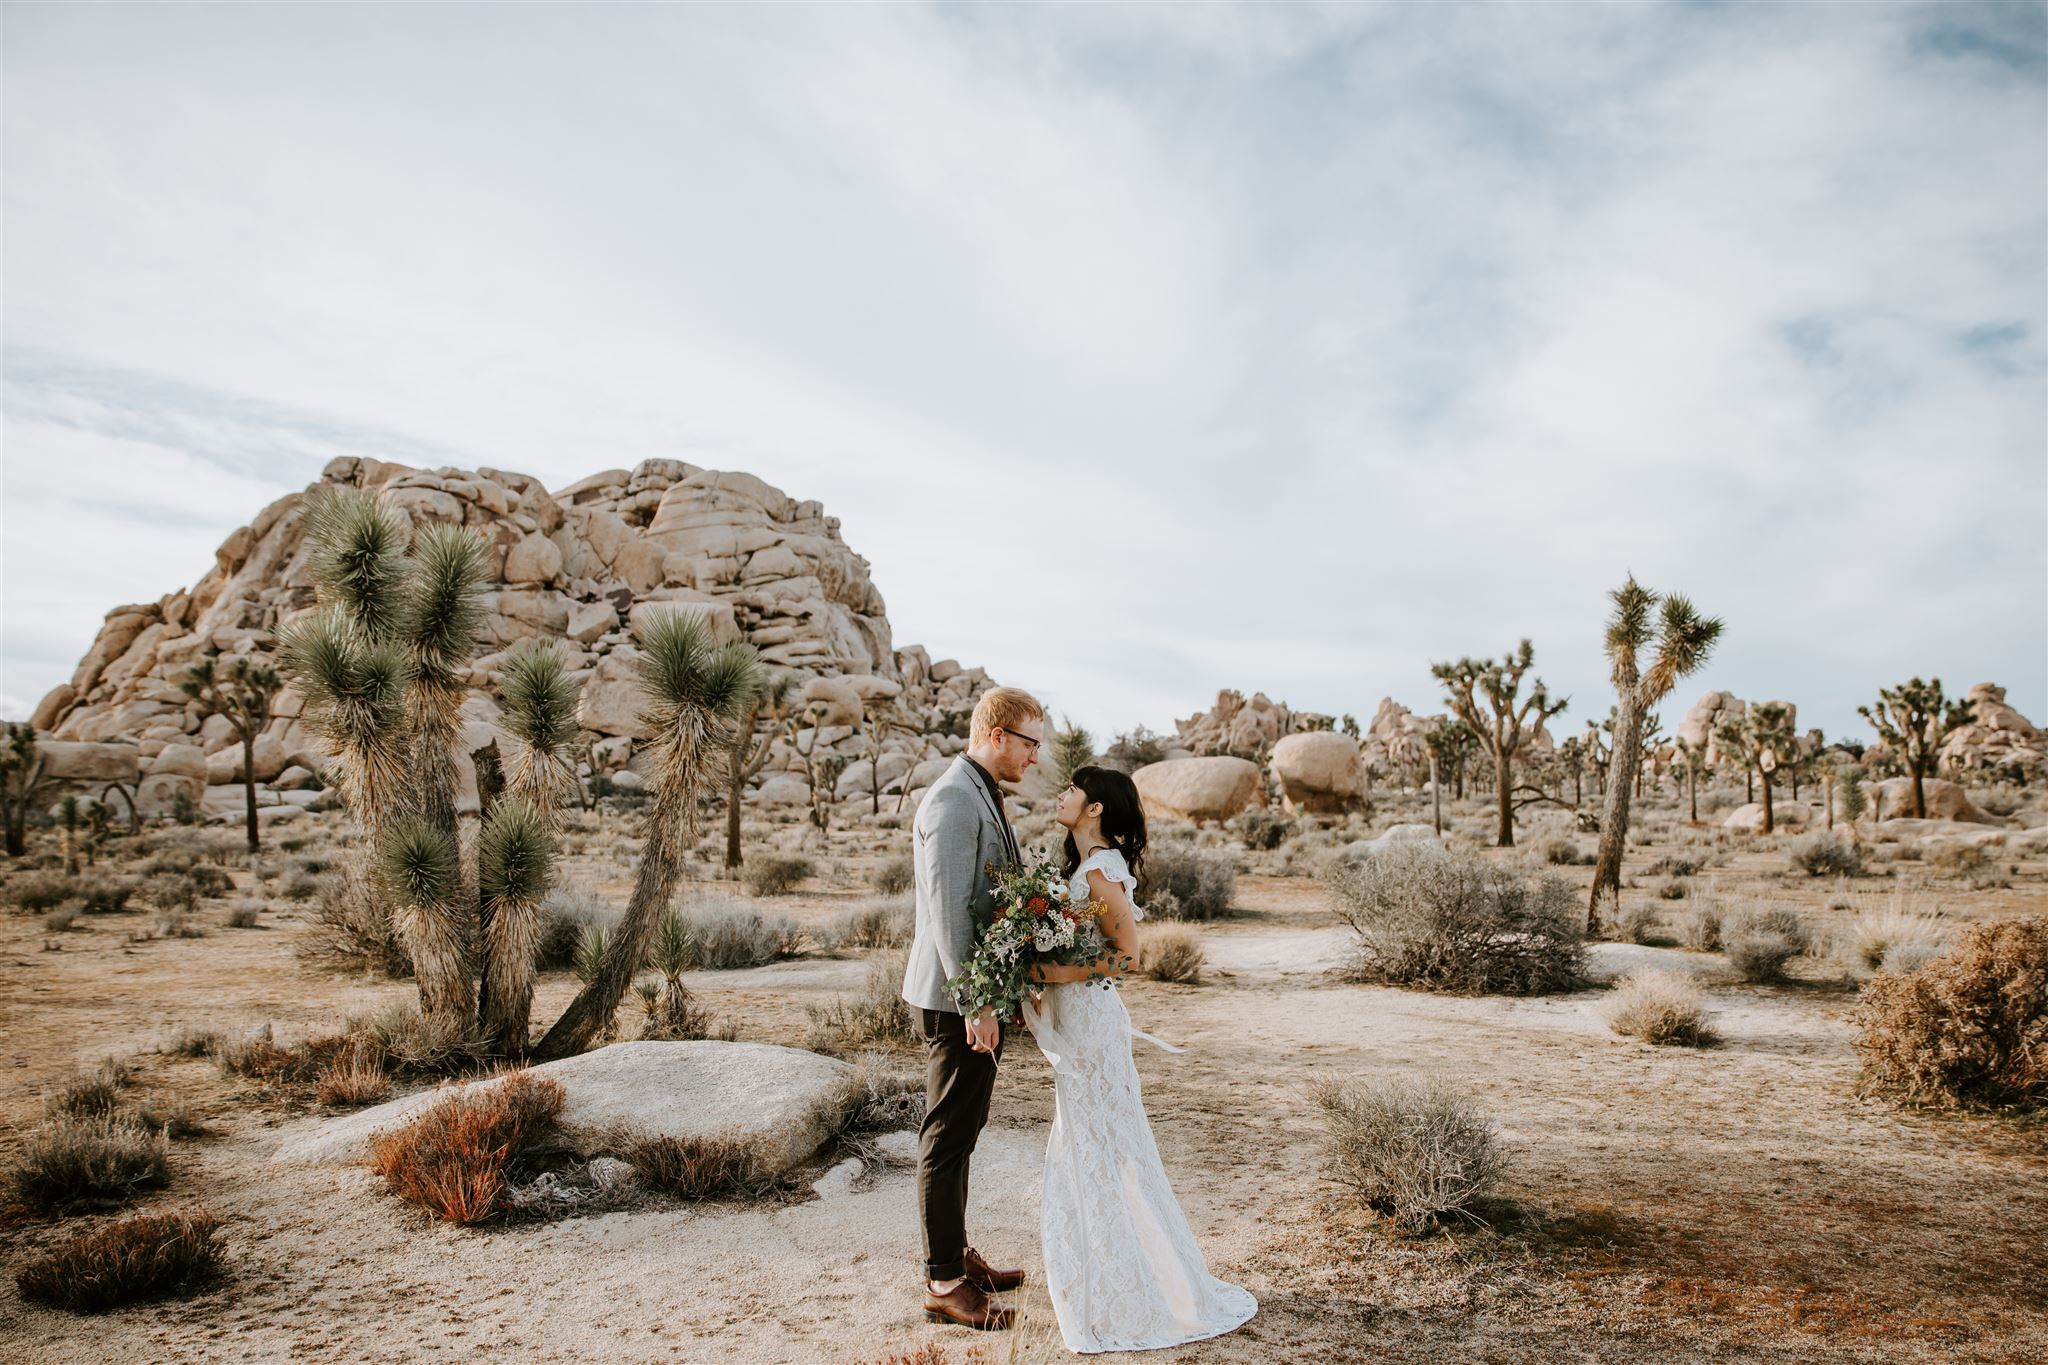 Joshua Tree CA Elopement Wedding  Photographer May Iosotaluno 33.jpg